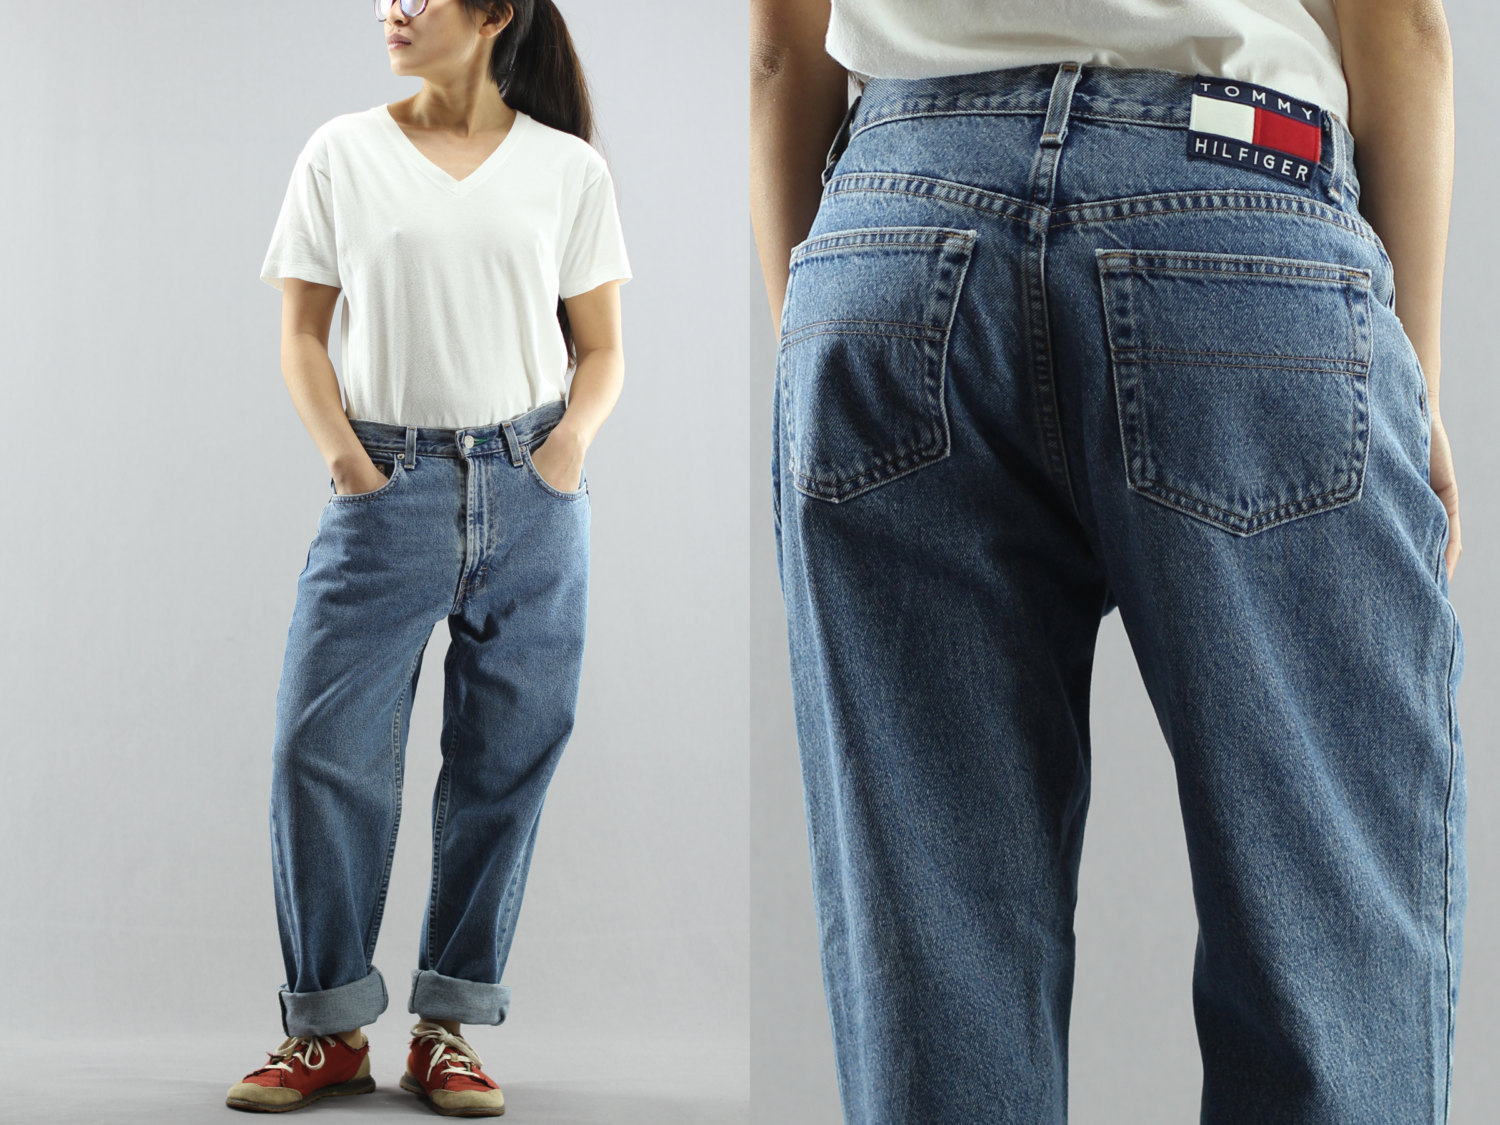 ca680c218 Baggy Tommy Hilfiger Boyfriend Pants Relaxed Loose Fit Medium Washed Blue  Jeans Size 10 Women's 90's Vintage